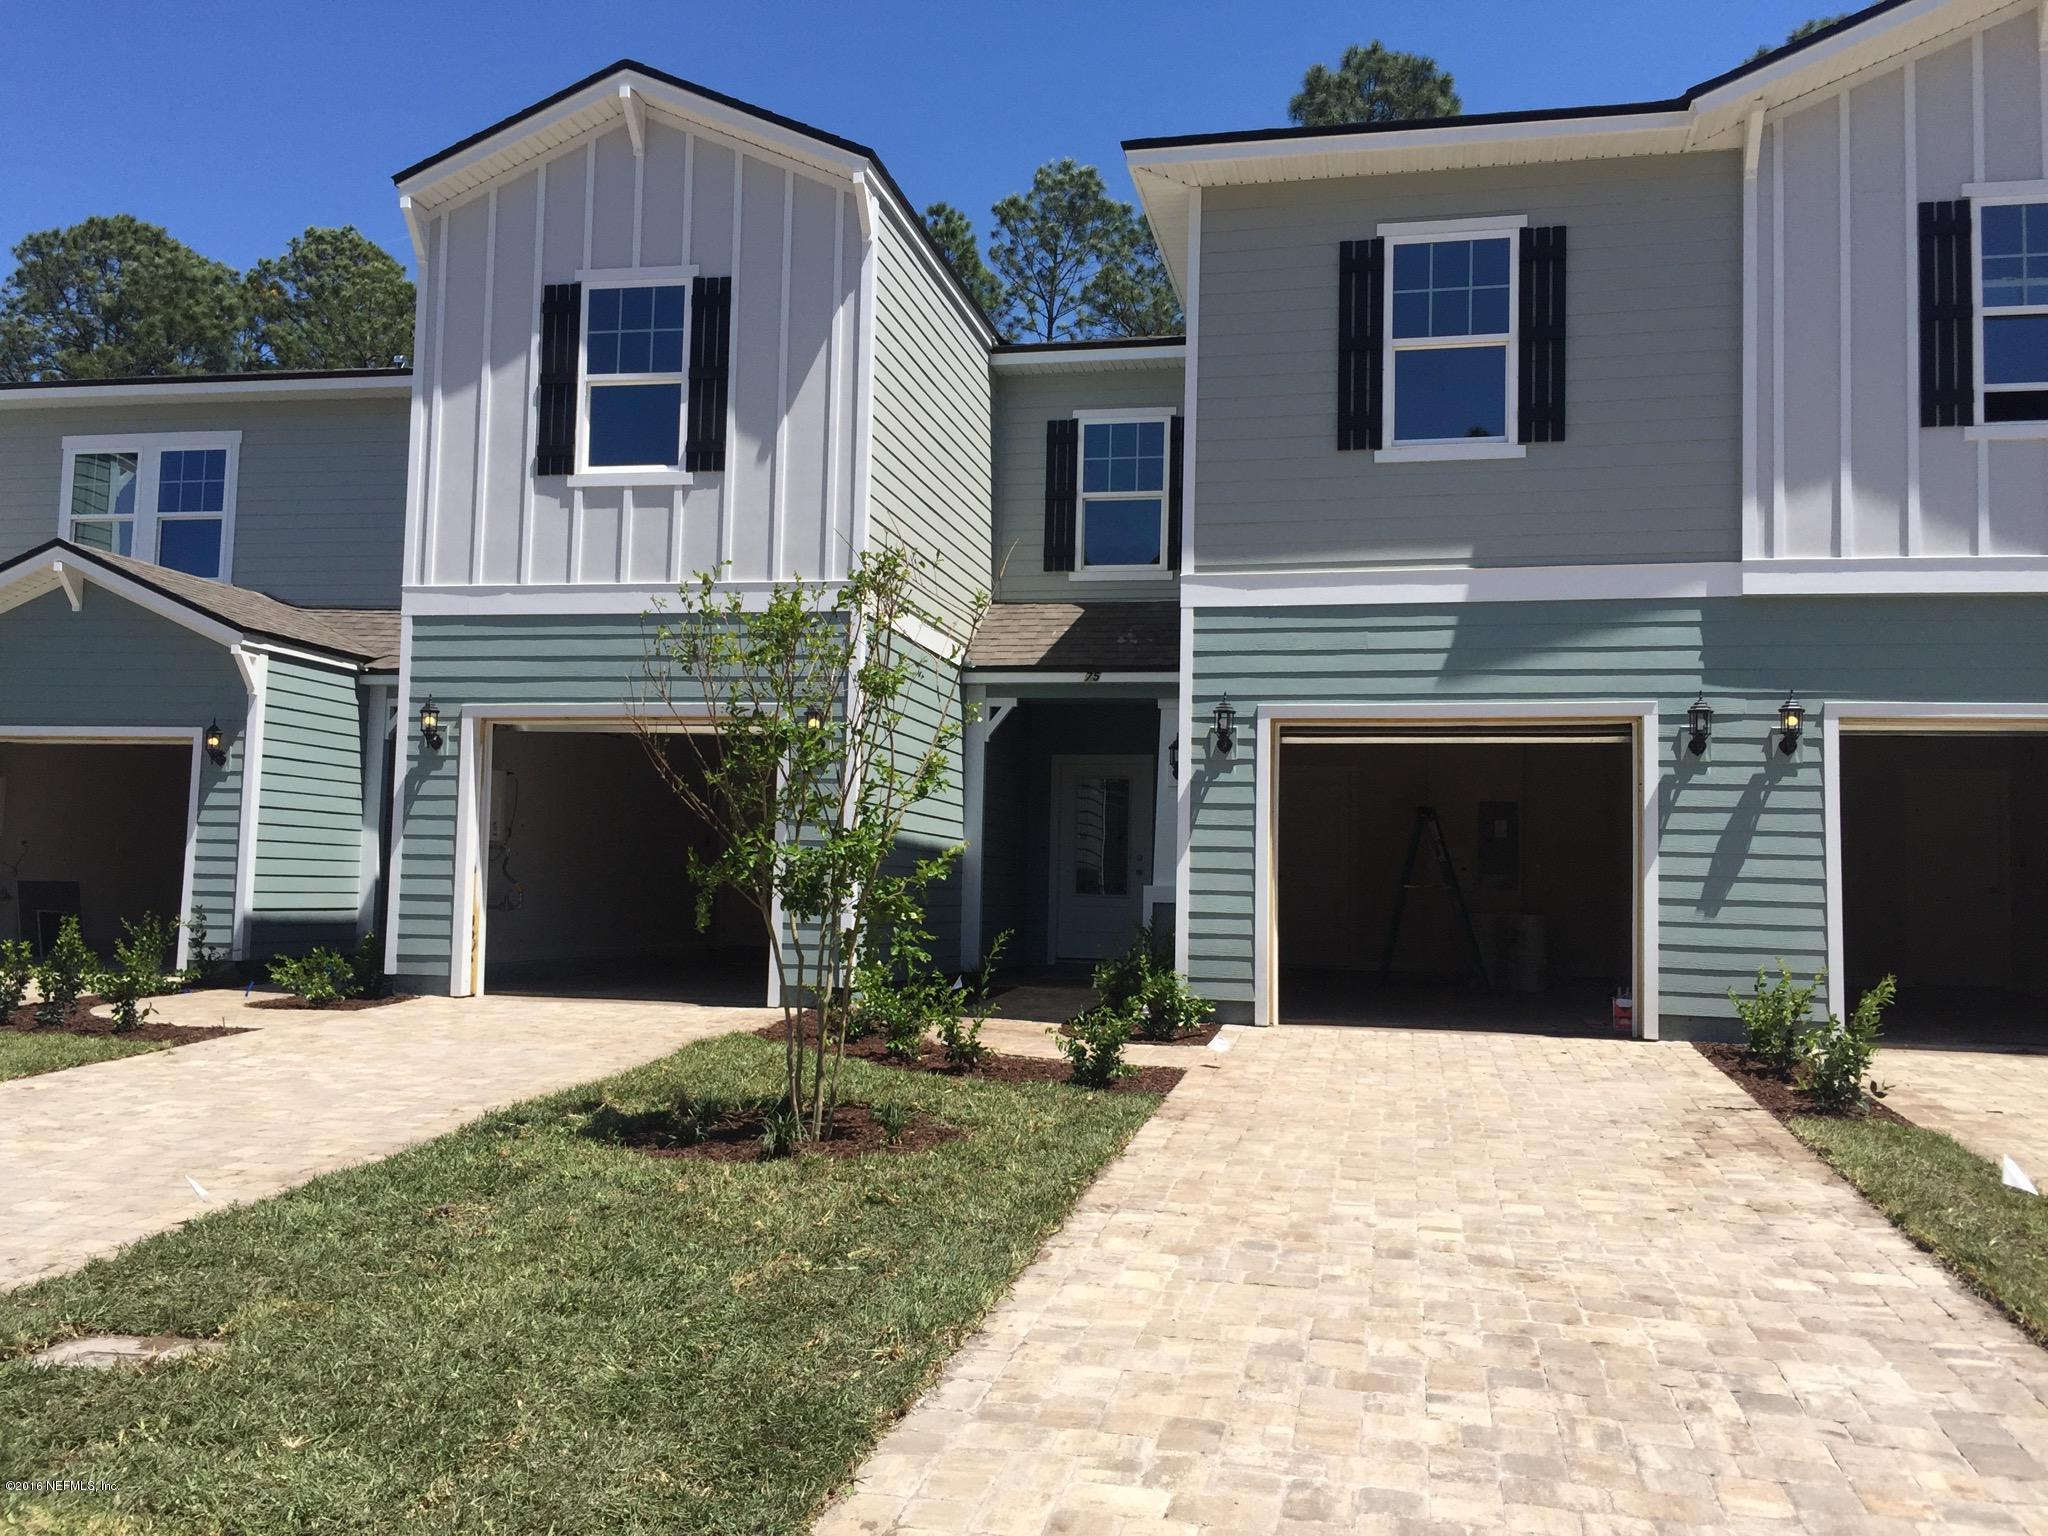 75 CANARY PALM, PONTE VEDRA, FLORIDA 32081, 3 Bedrooms Bedrooms, ,2 BathroomsBathrooms,Rental,For Rent,CANARY PALM,1114886